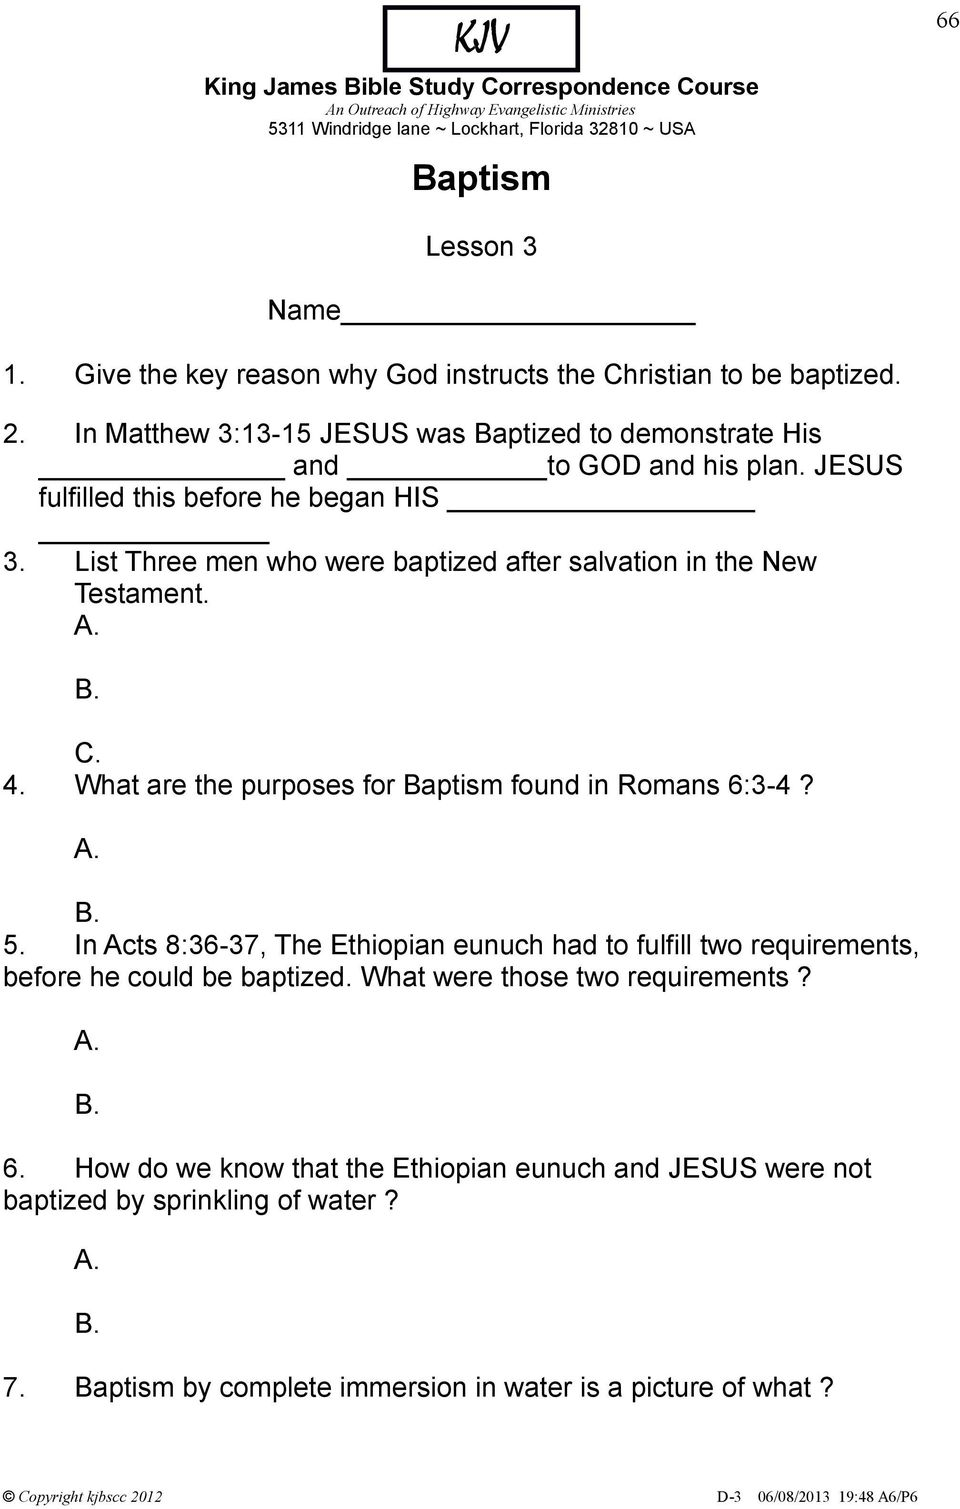 List Three men who were baptized after salvation in the New Testament. C. 4. What are the purposes for Baptism found in Romans 6:3-4? 5.